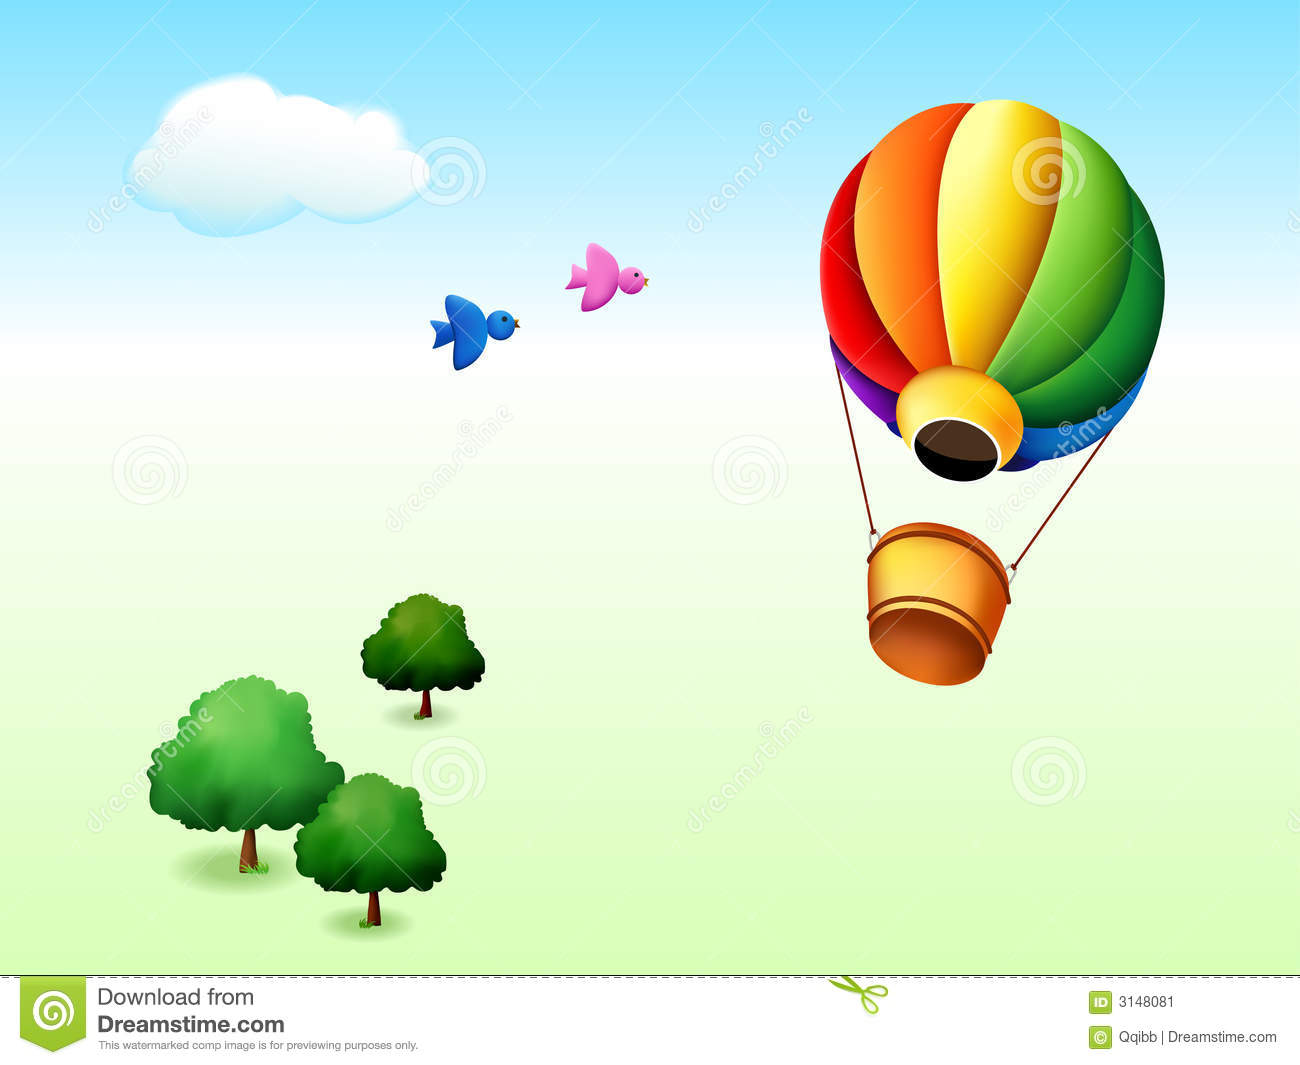 Illustration of cartoon park with trees, birds and fire balloon.